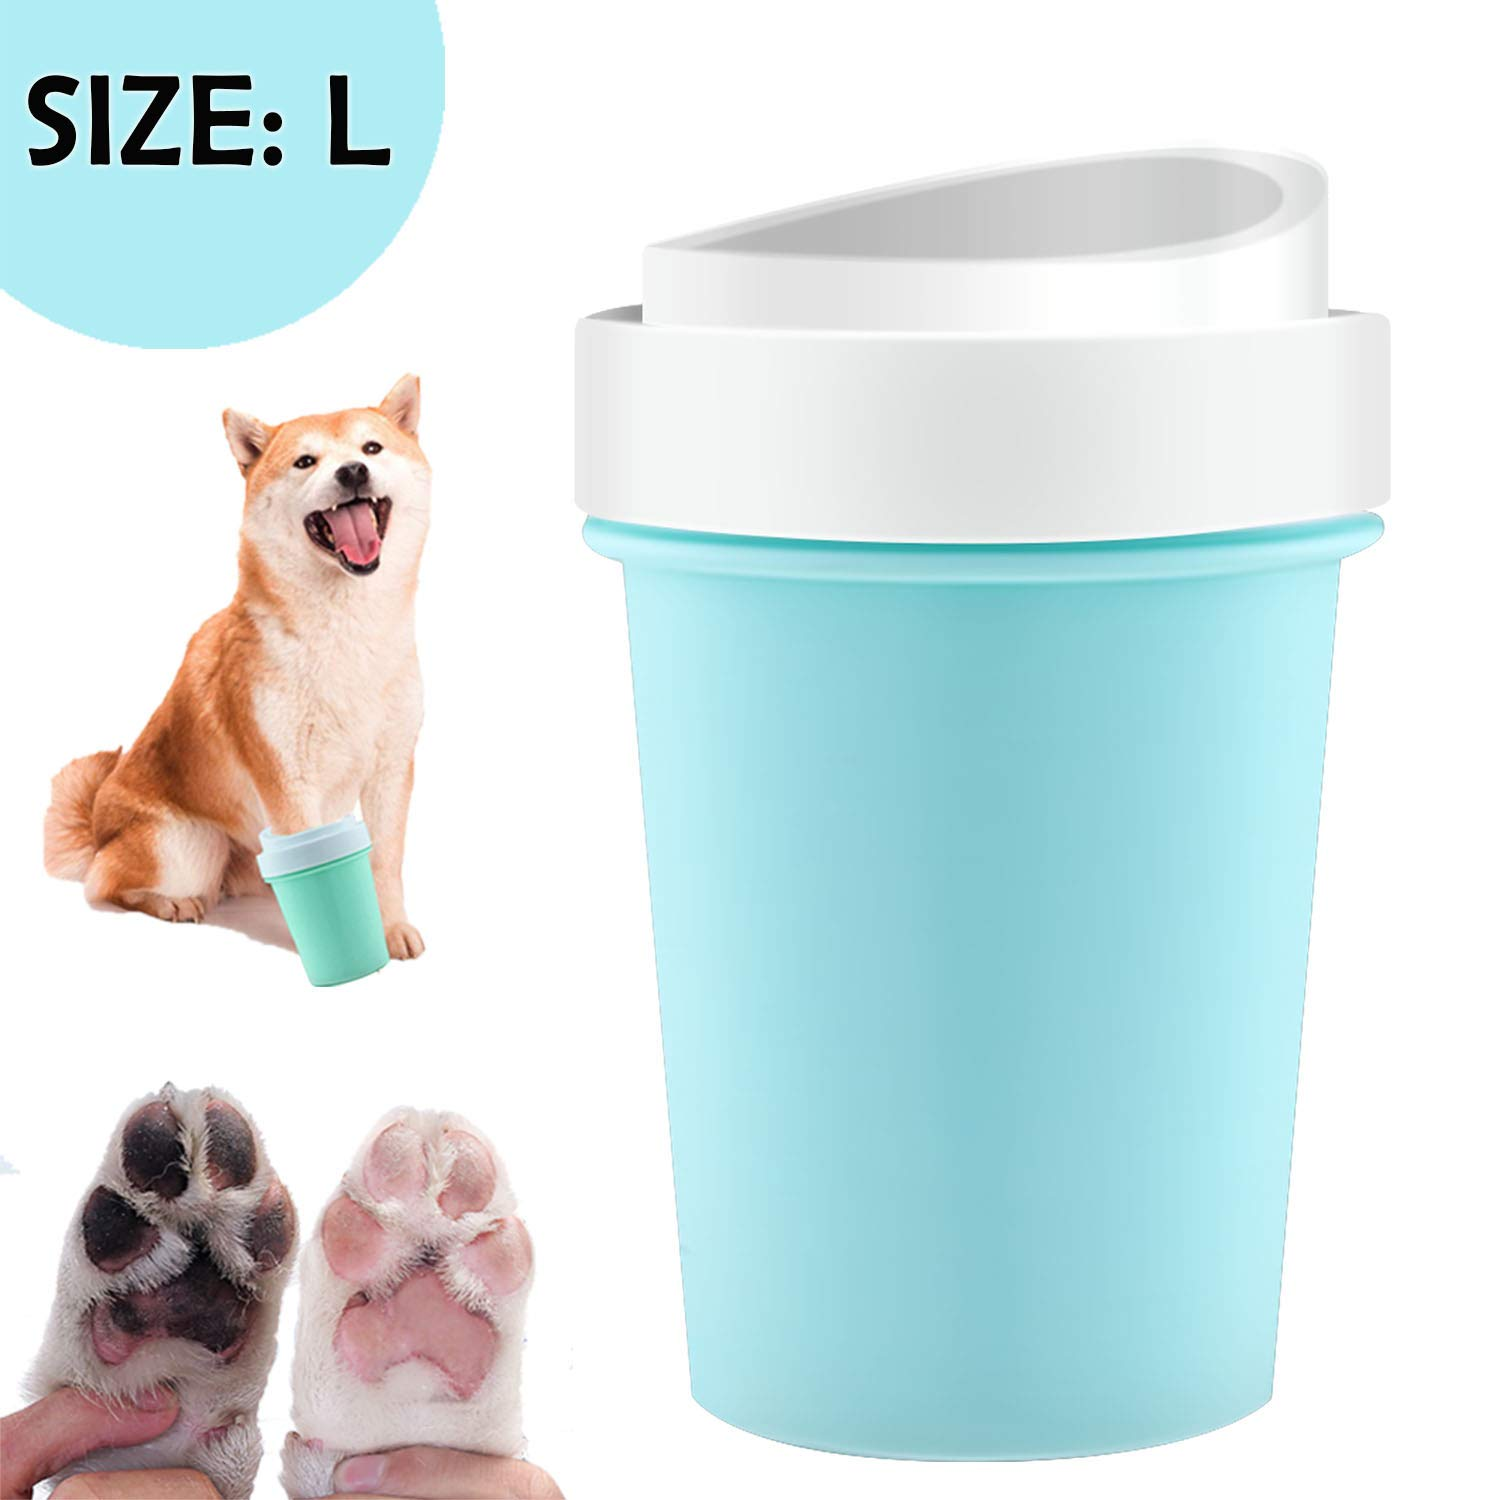 bealy Portable Dog Paw Cleaner Large Pet Paw Cleaner for Dogs Foot Washer Muddy Paws Cleaner with Soft Silicone